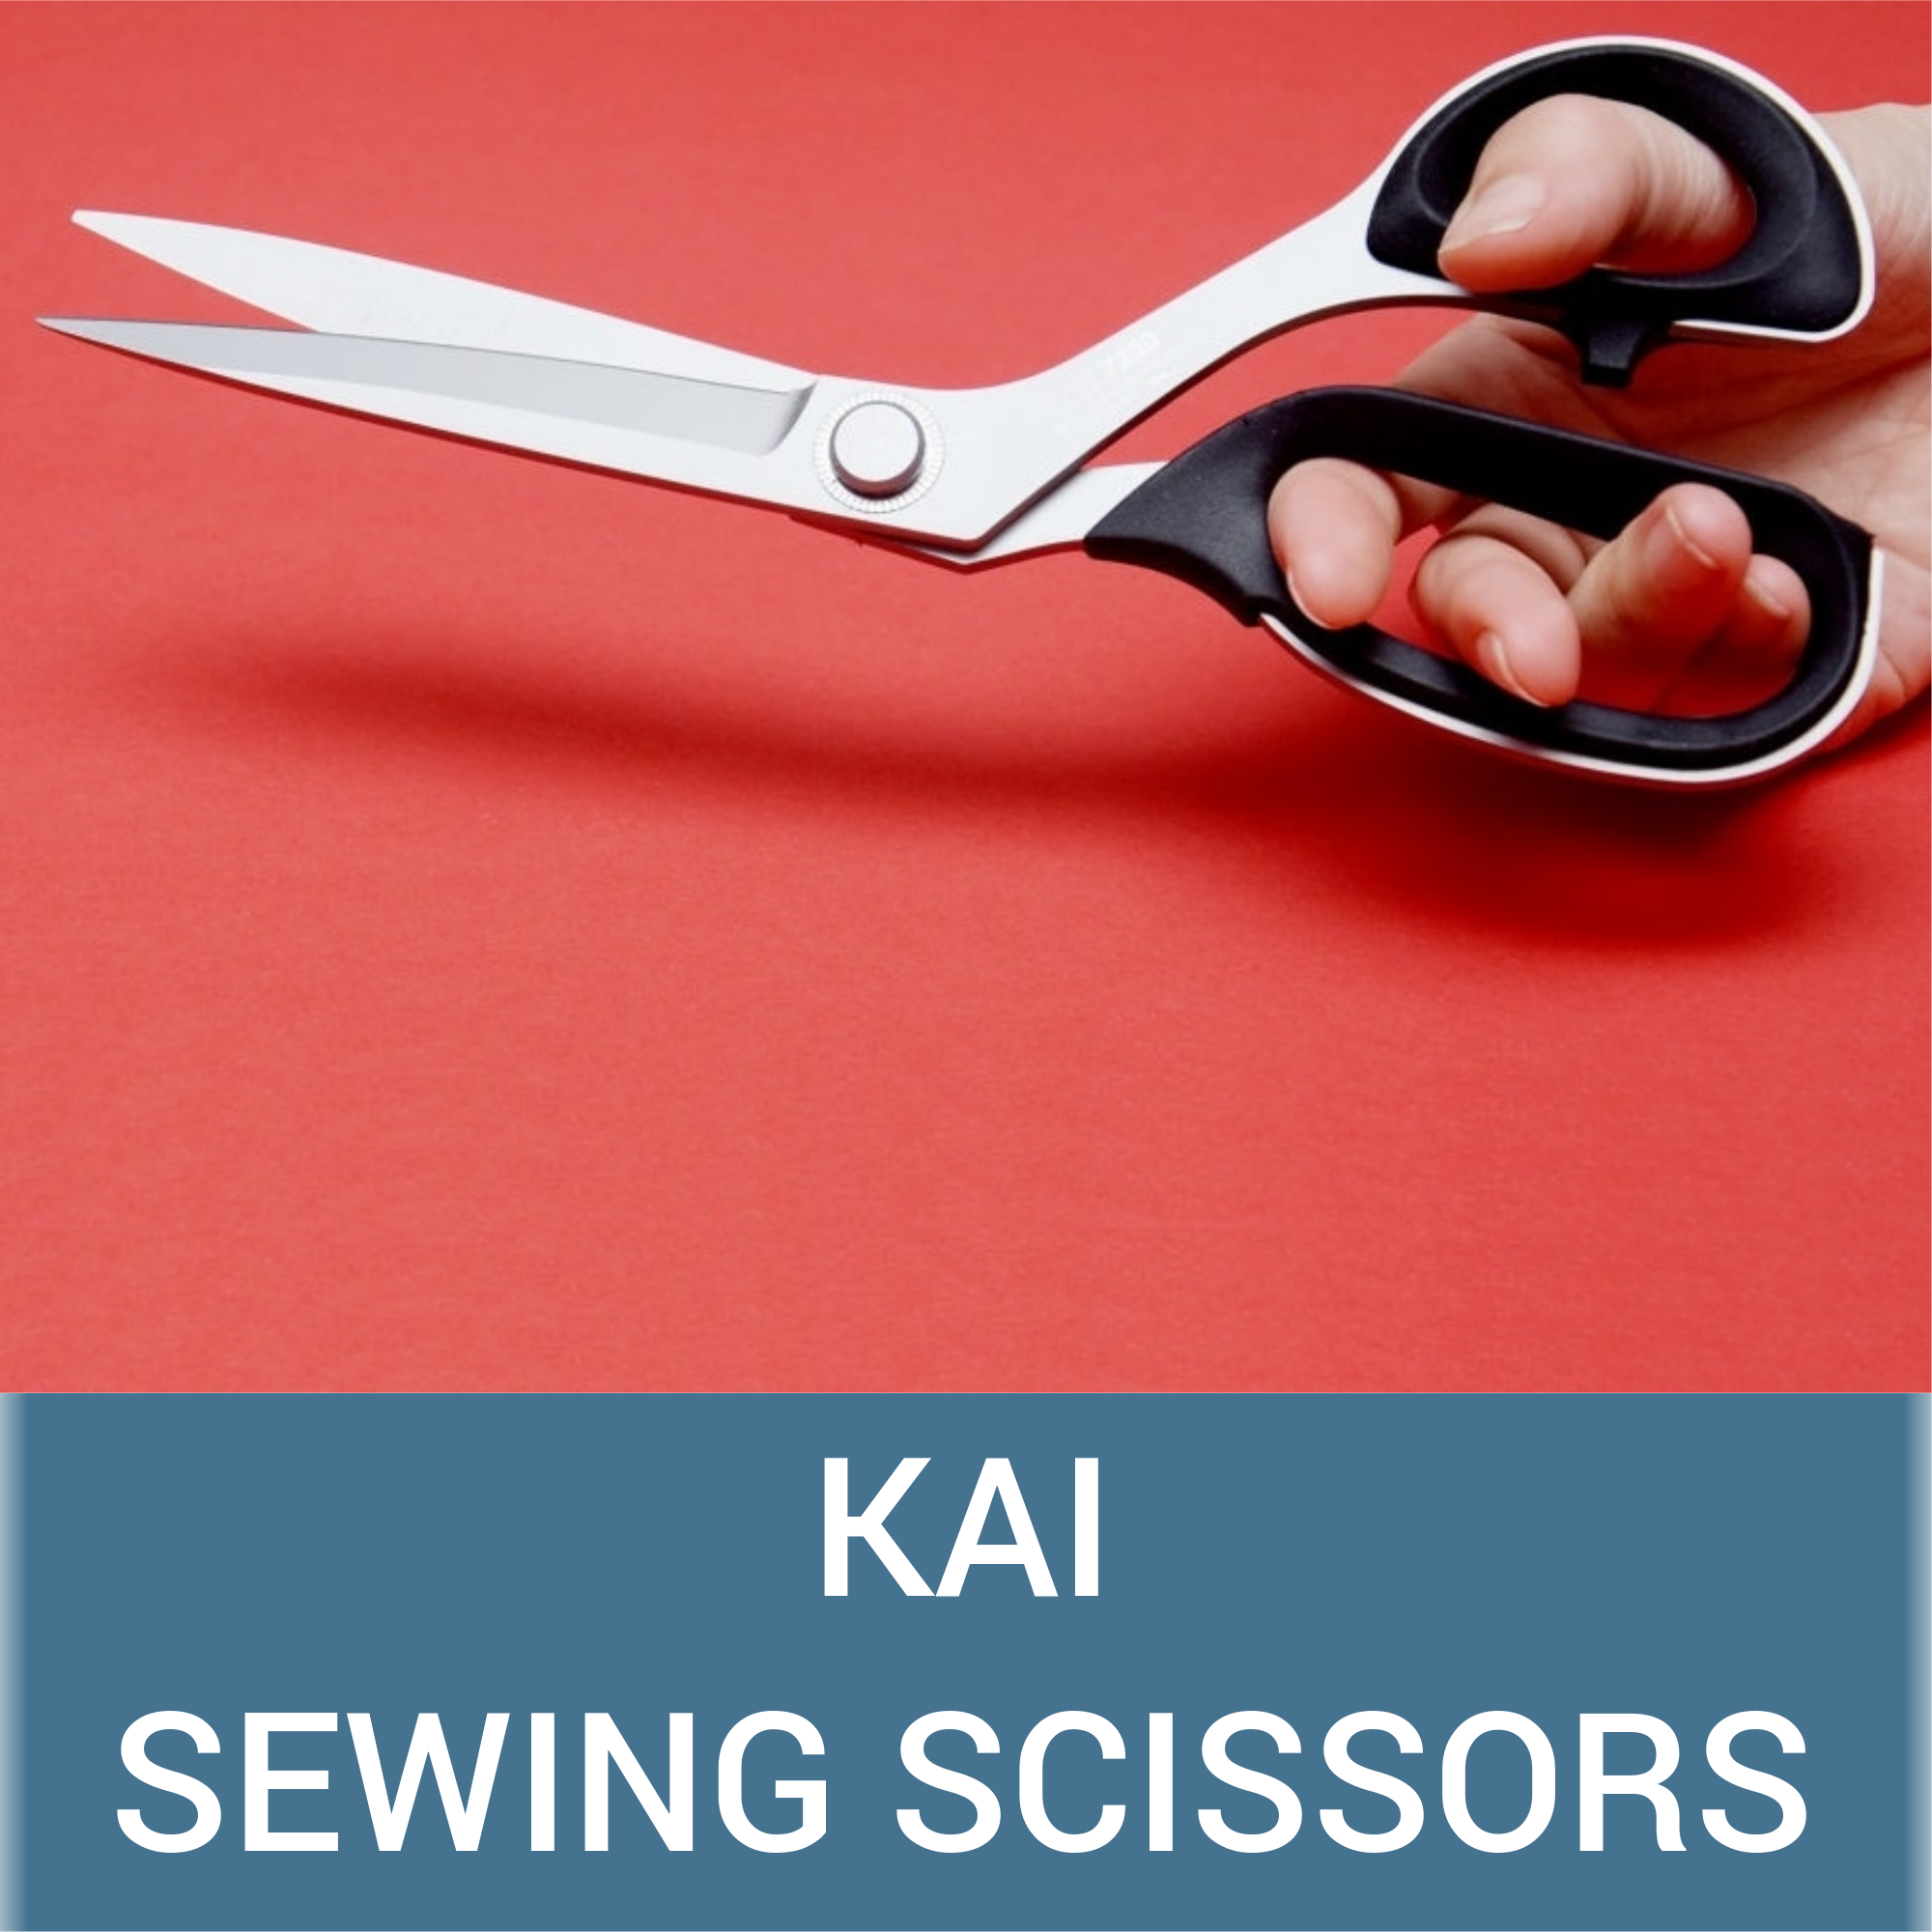 KAI Sewing Scissors